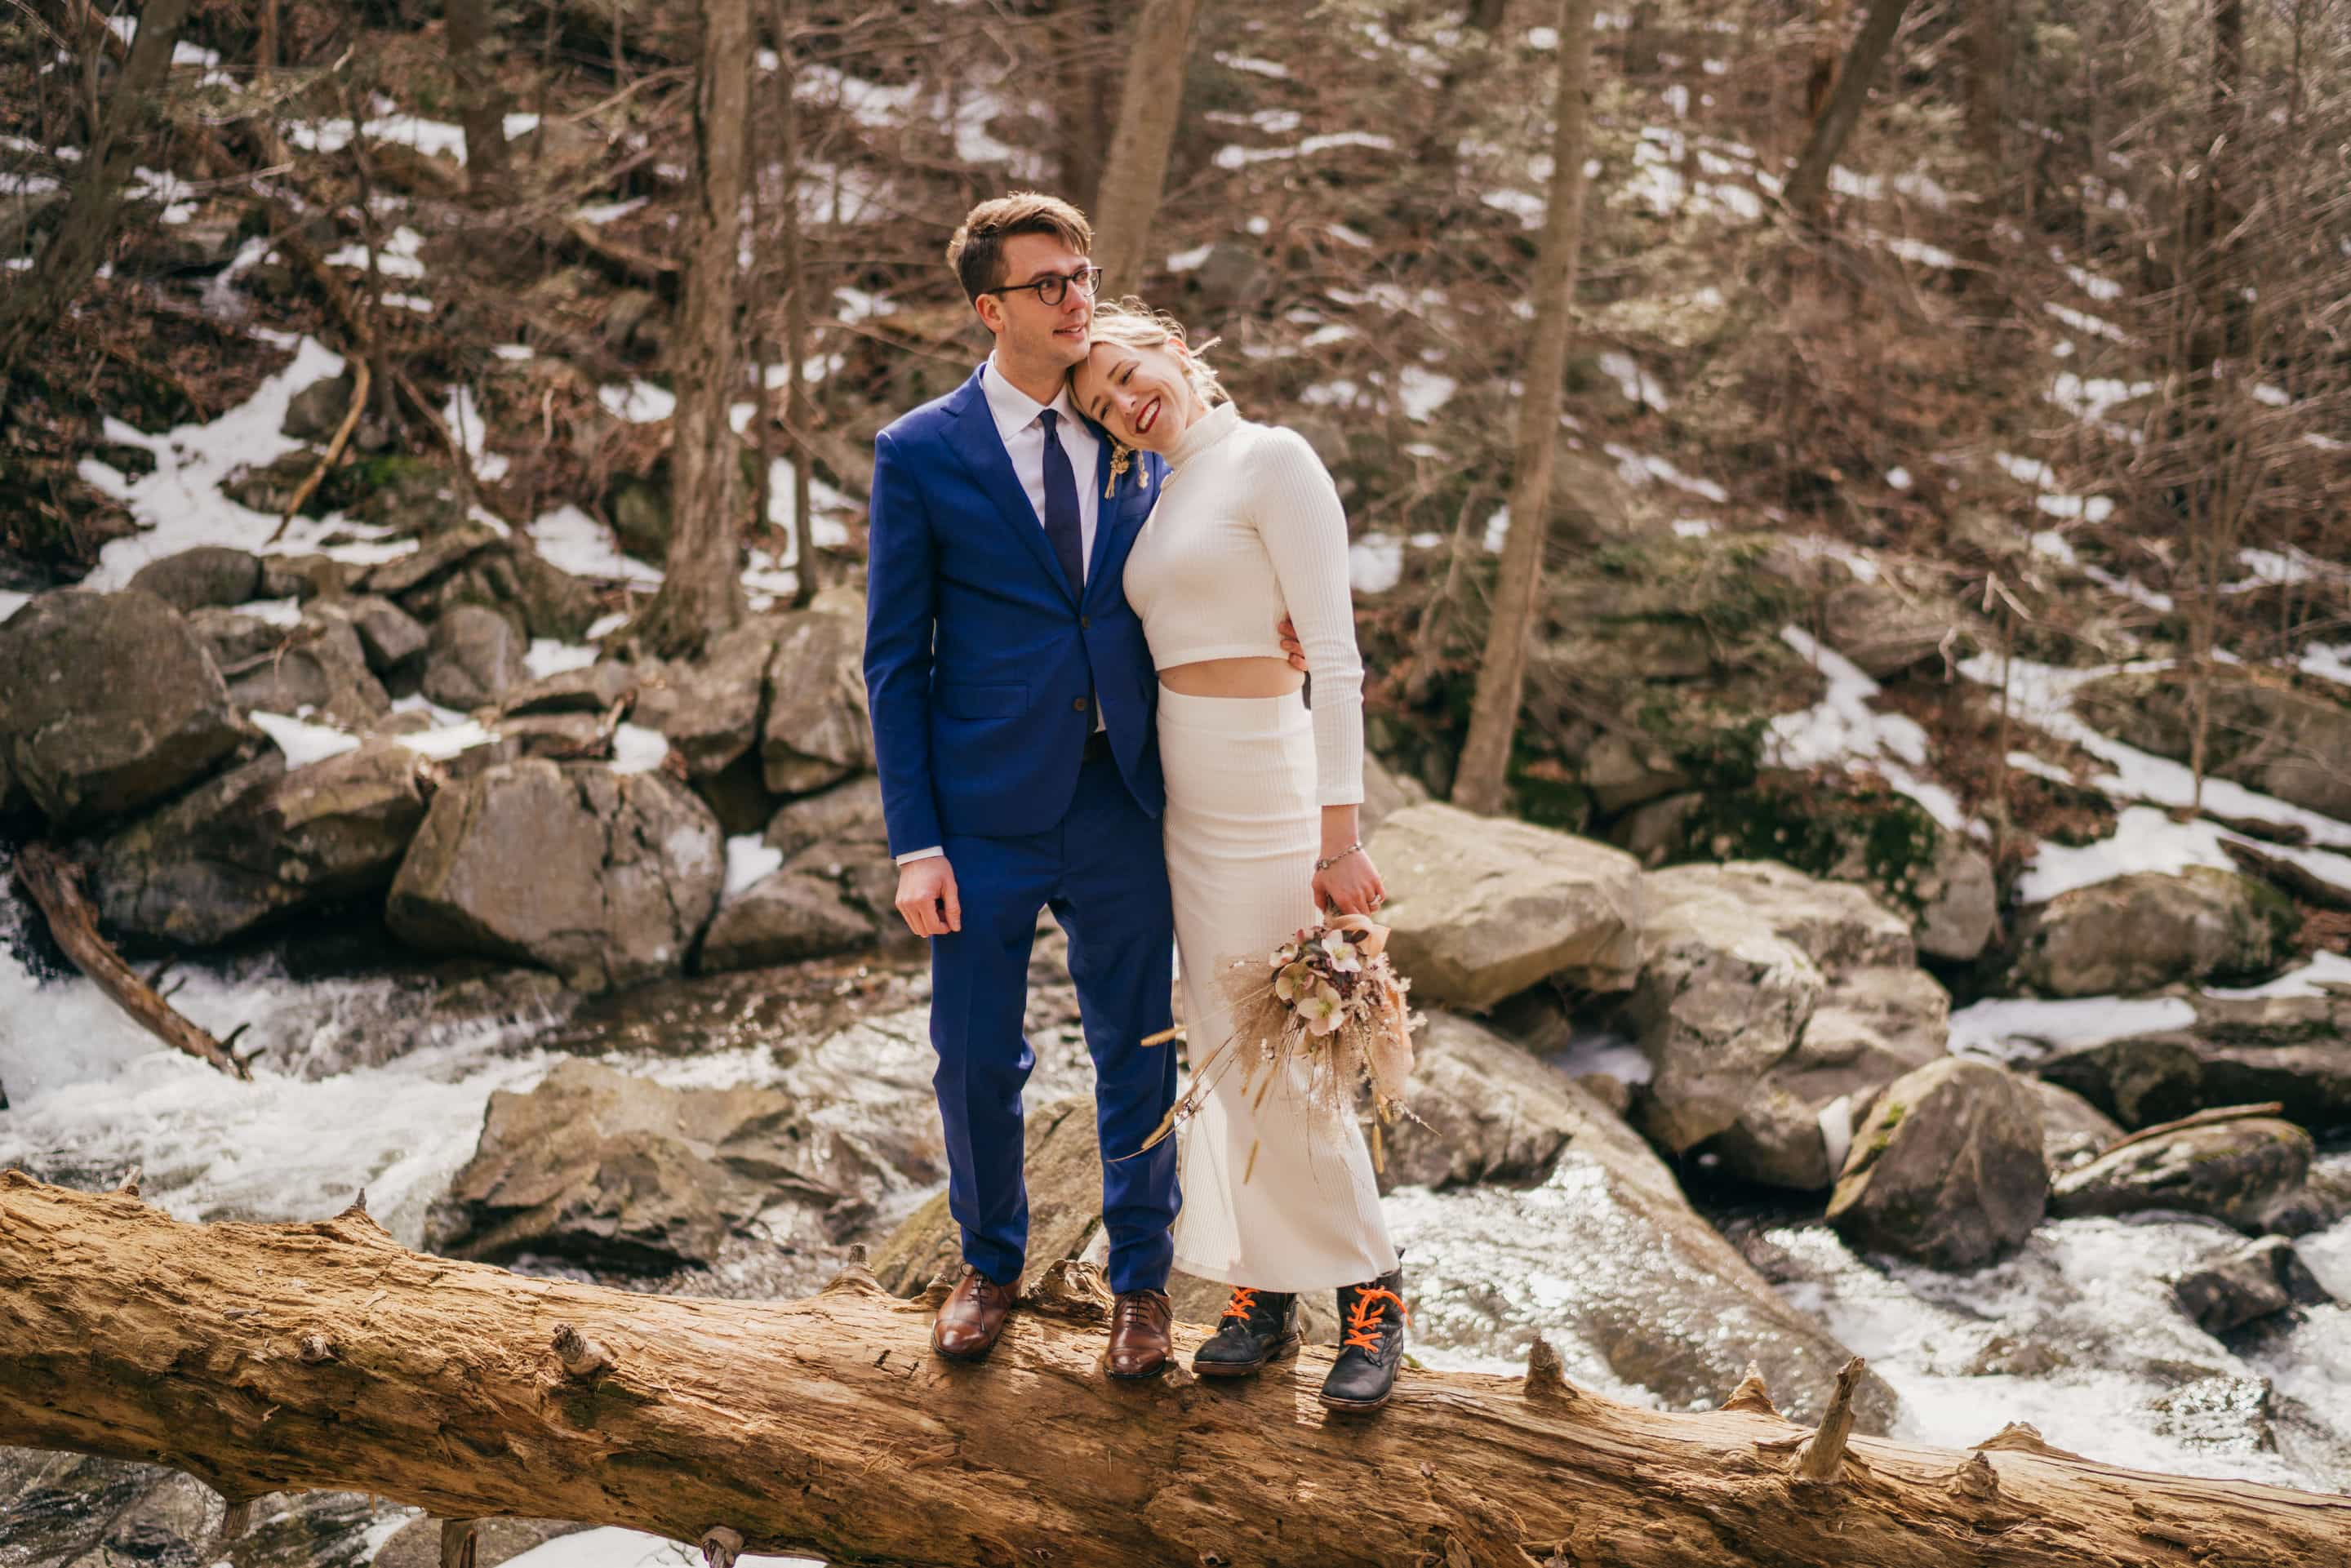 Bride in dress and hiking boots smiles and leans on groom's shoulder as he puts his arm around her waist, standing on a log over a river in winter Hudson Valley forest.